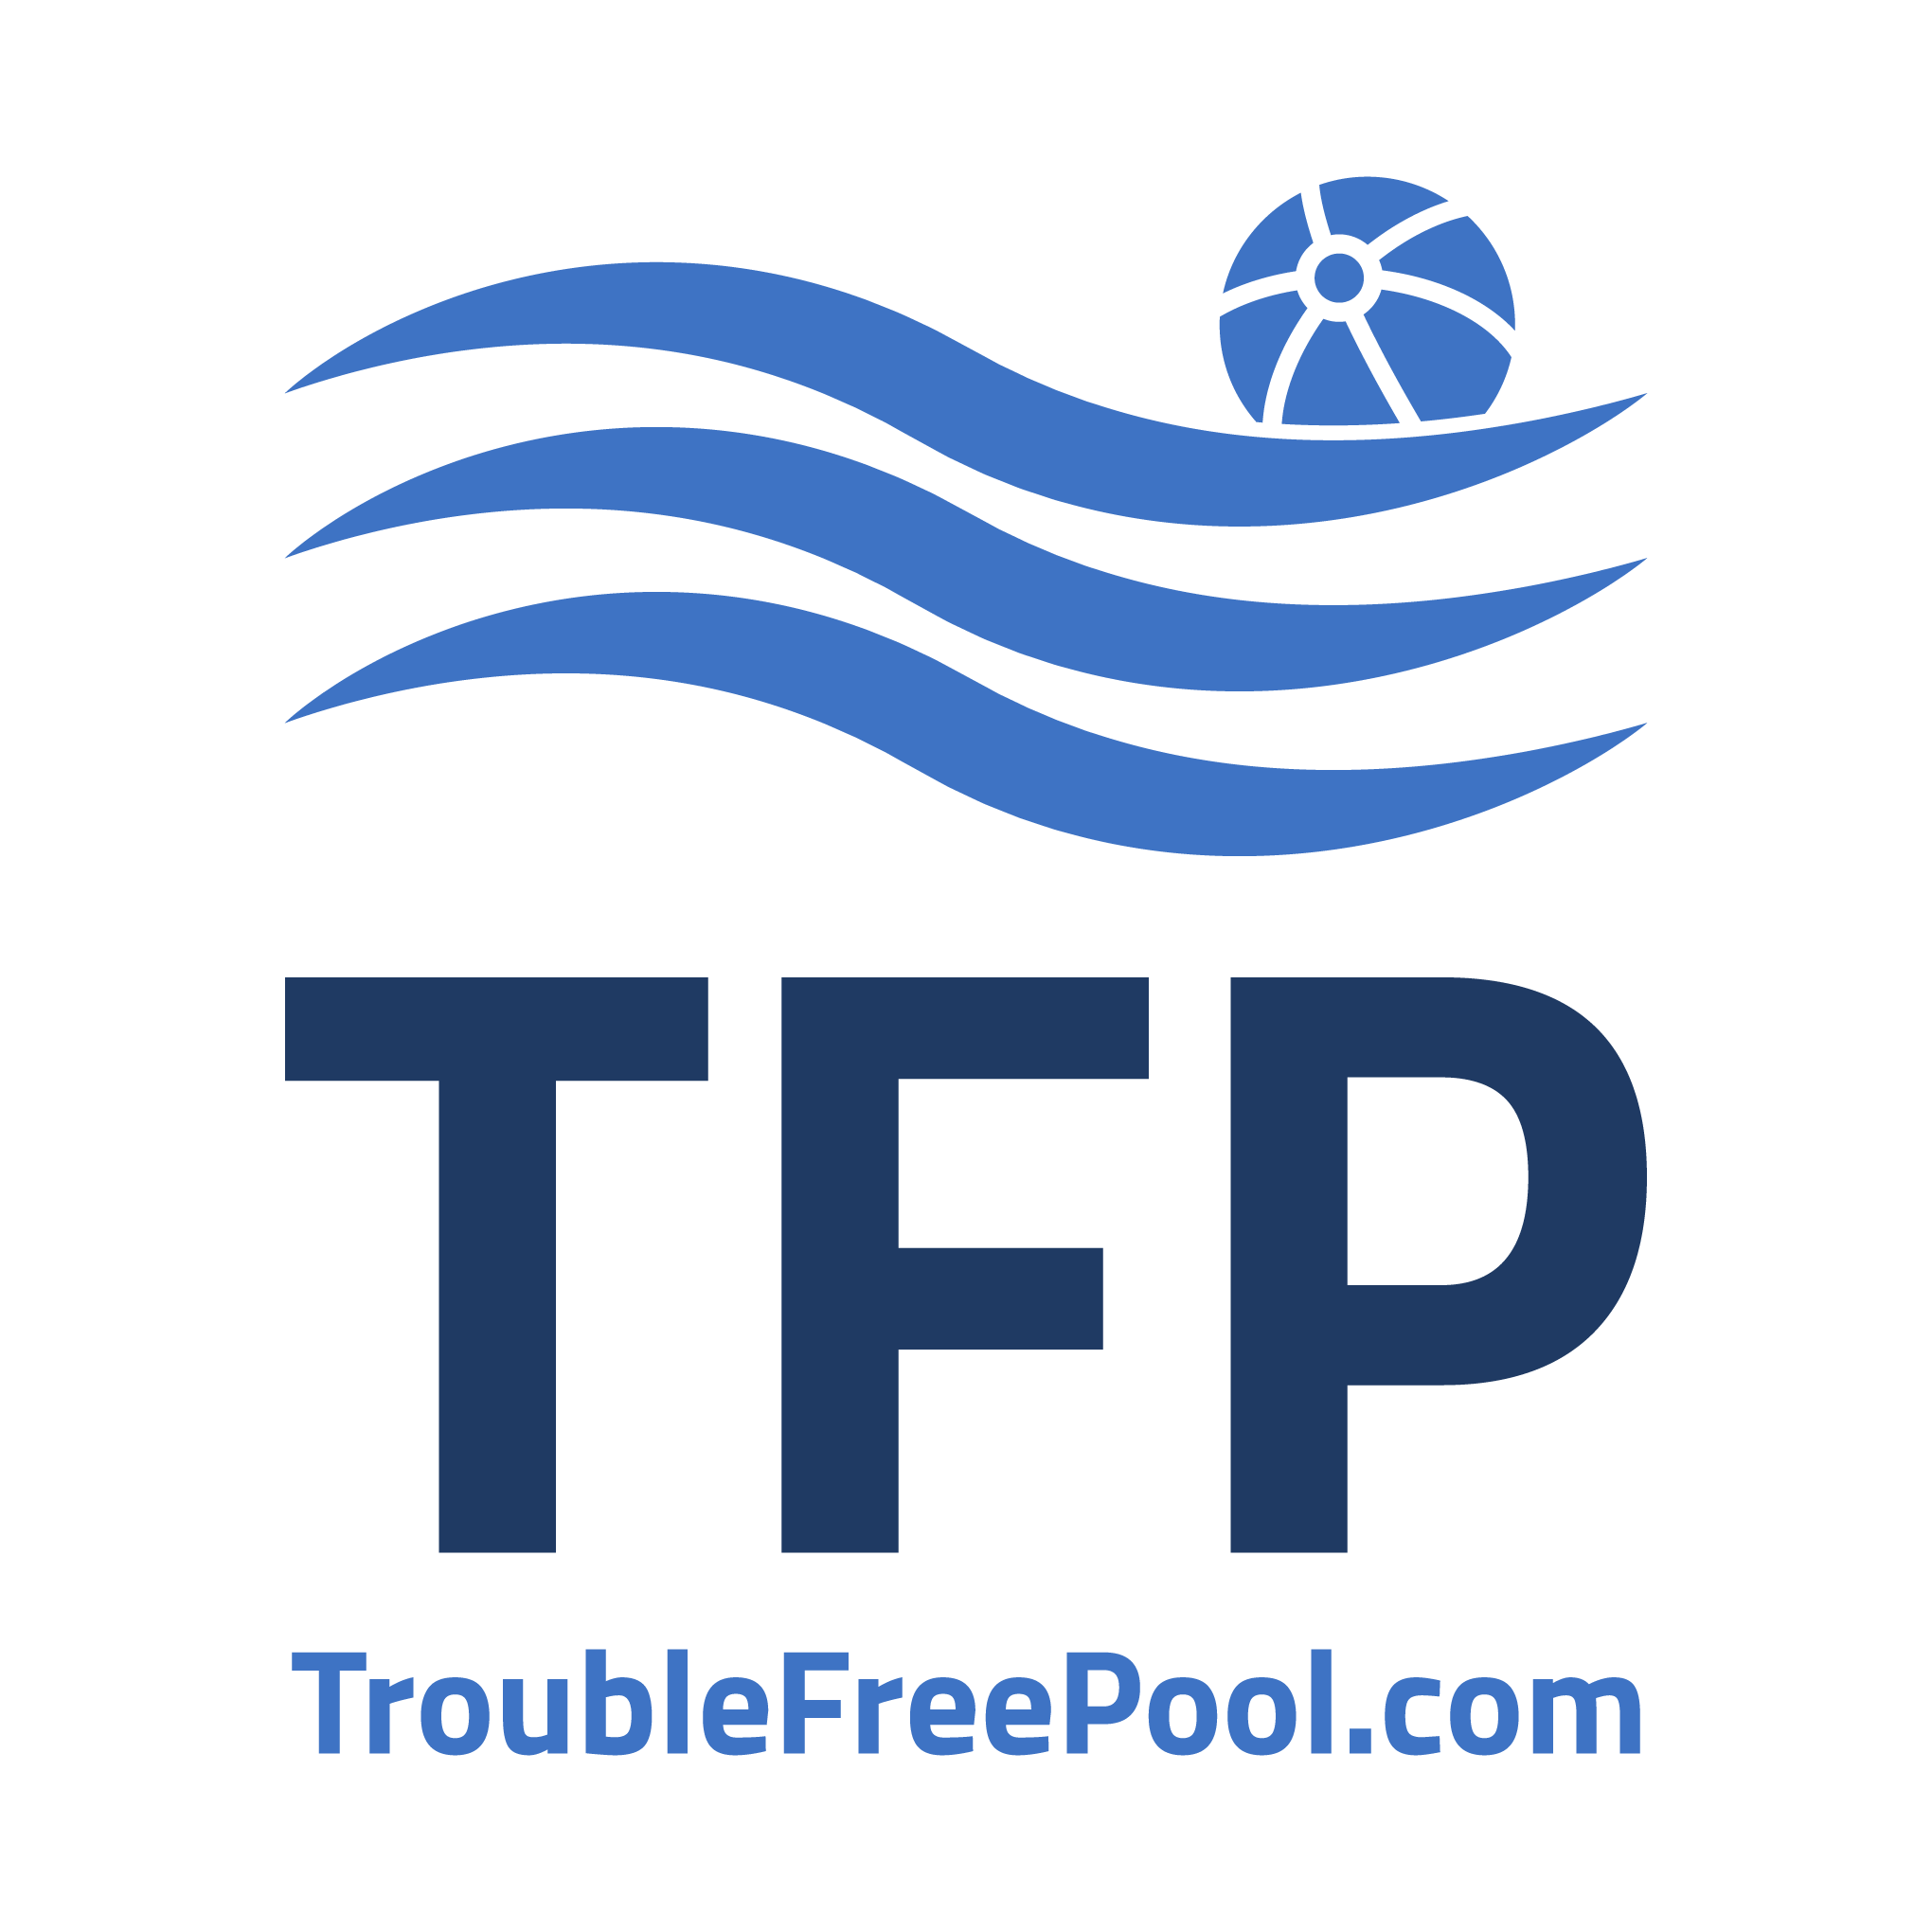 www.troublefreepool.com